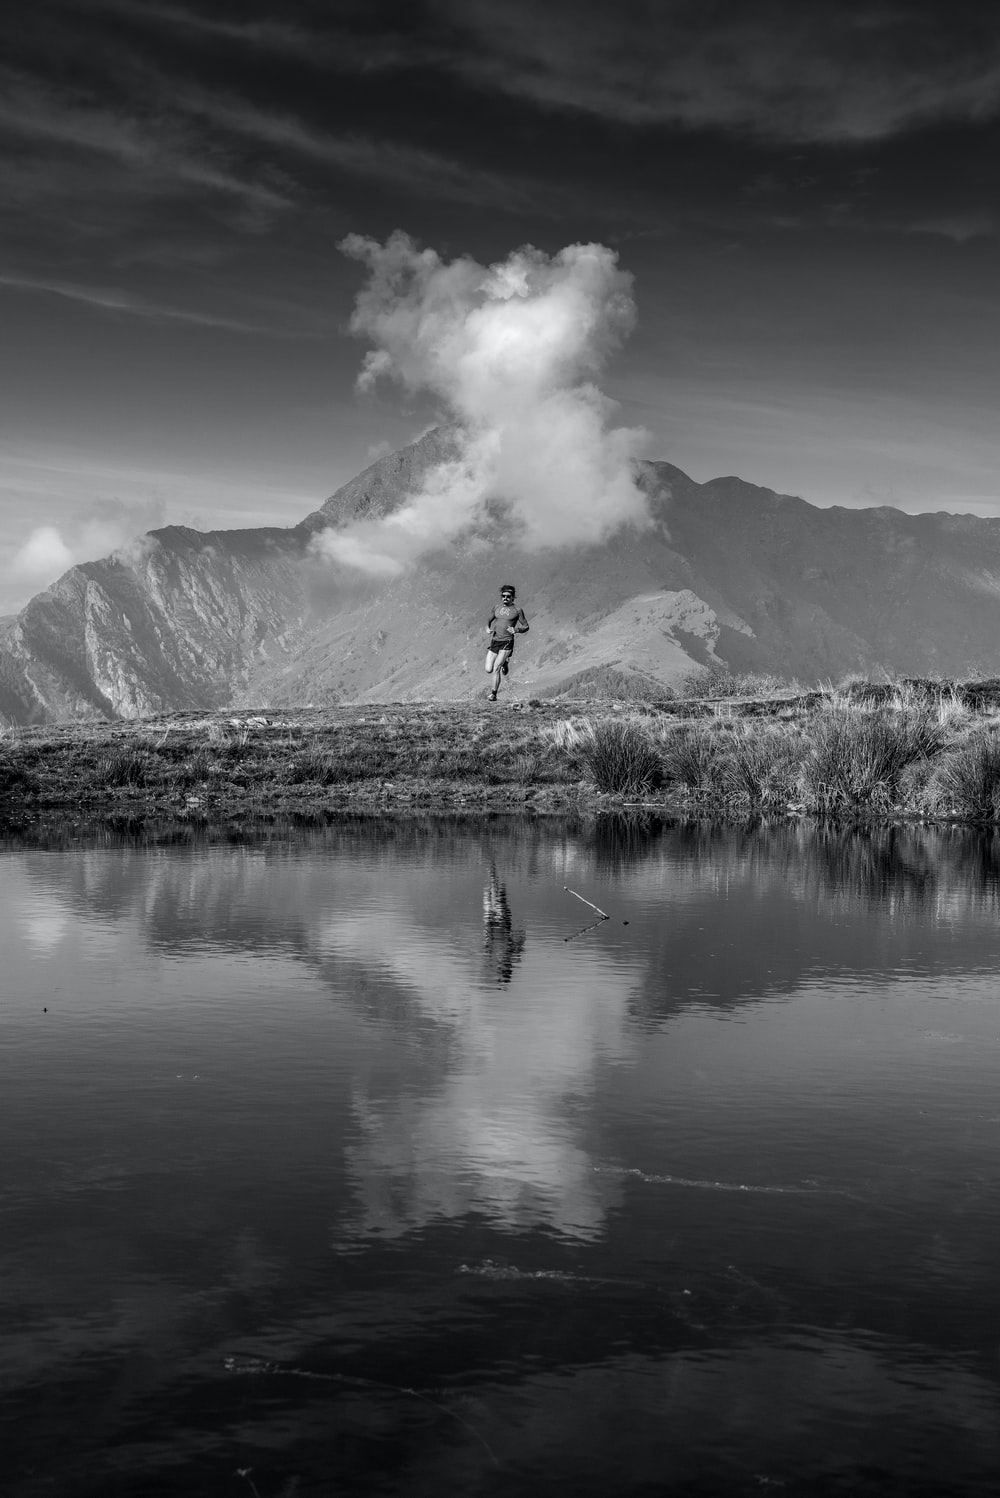 grayscale photo of man jump over calm body of water